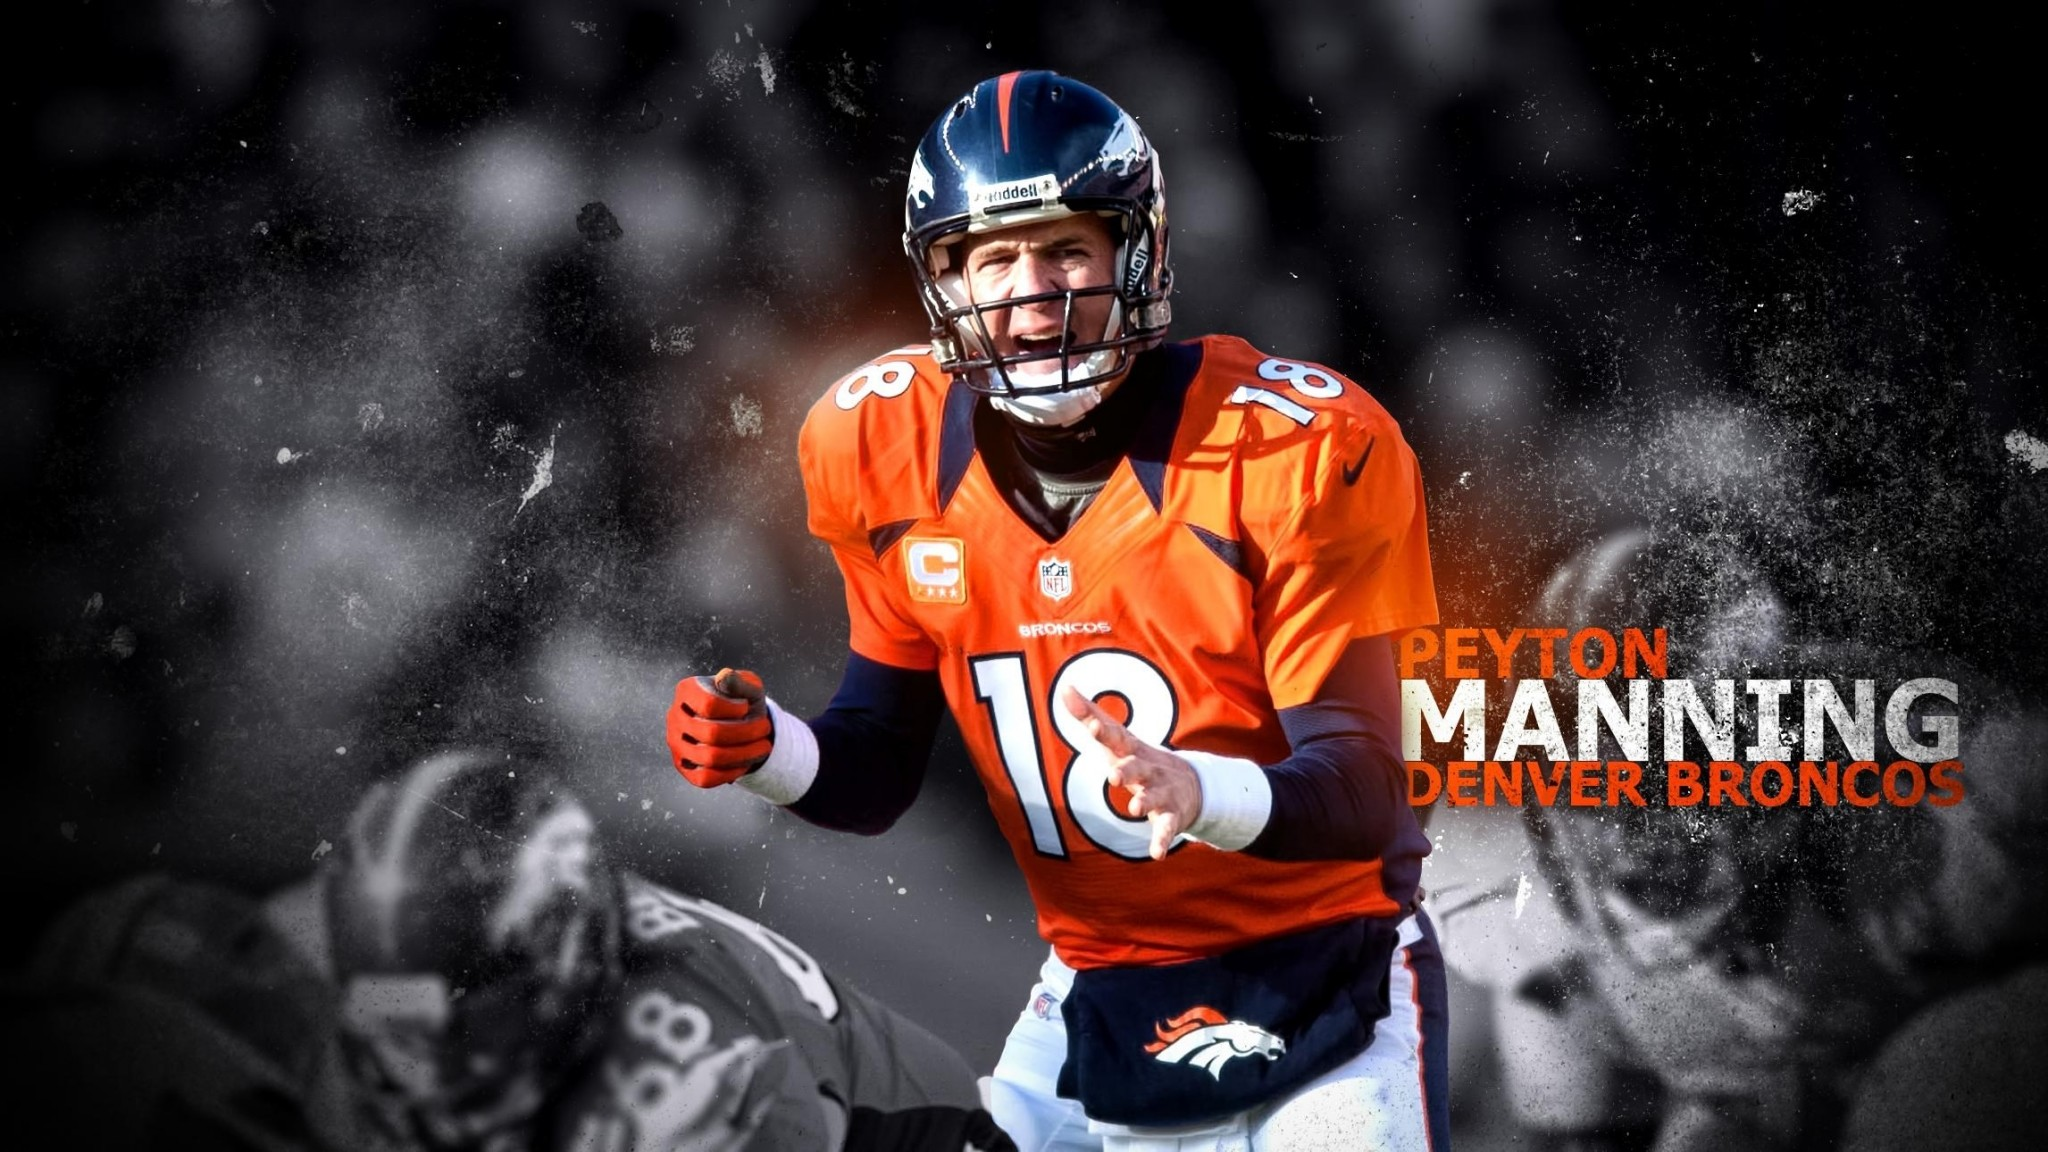 denver broncos wallpaper desktop backgrounds free